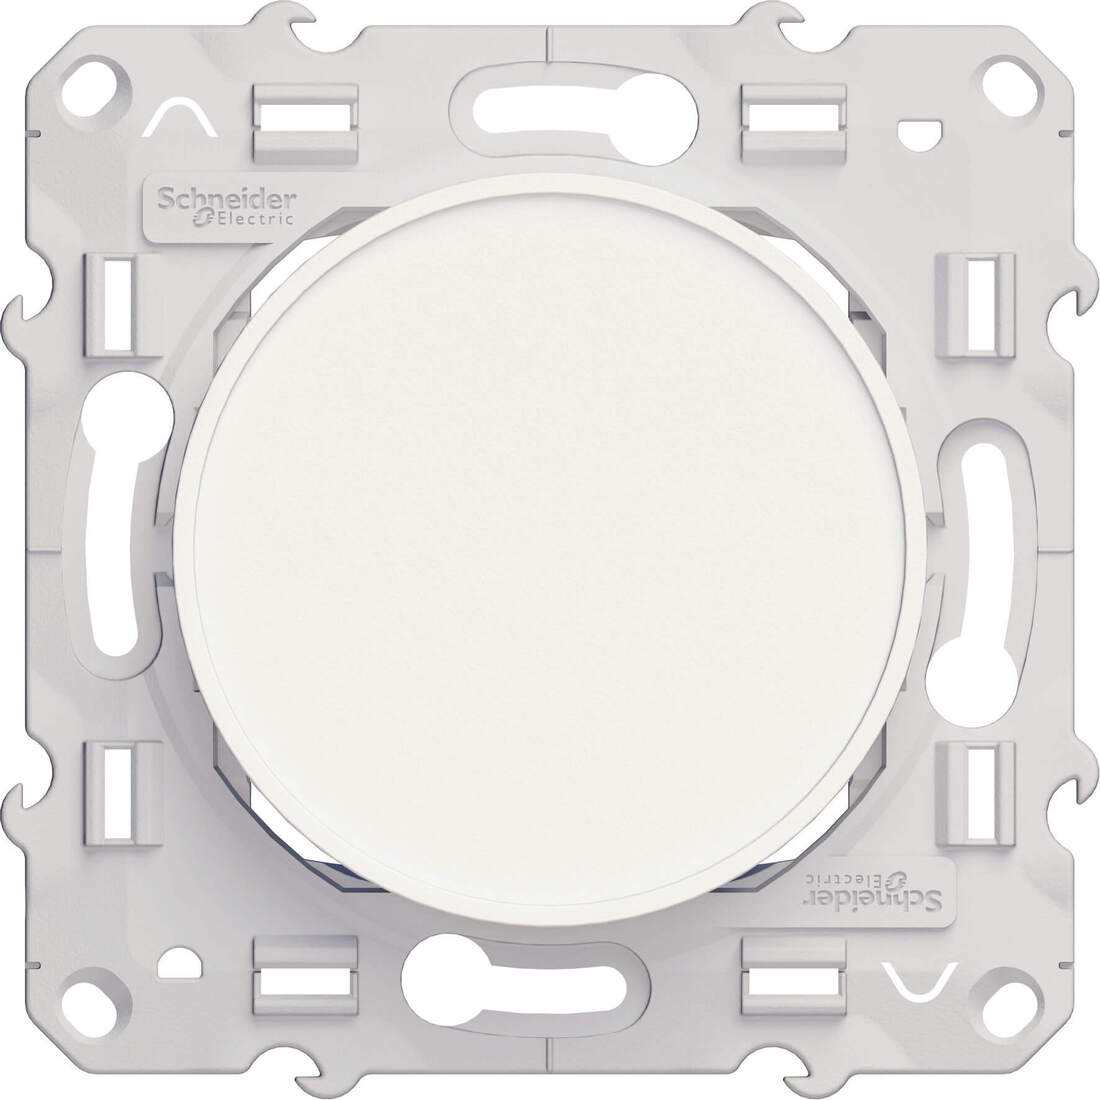 Schneider Electric Odace blindplaat - wit (S520666)